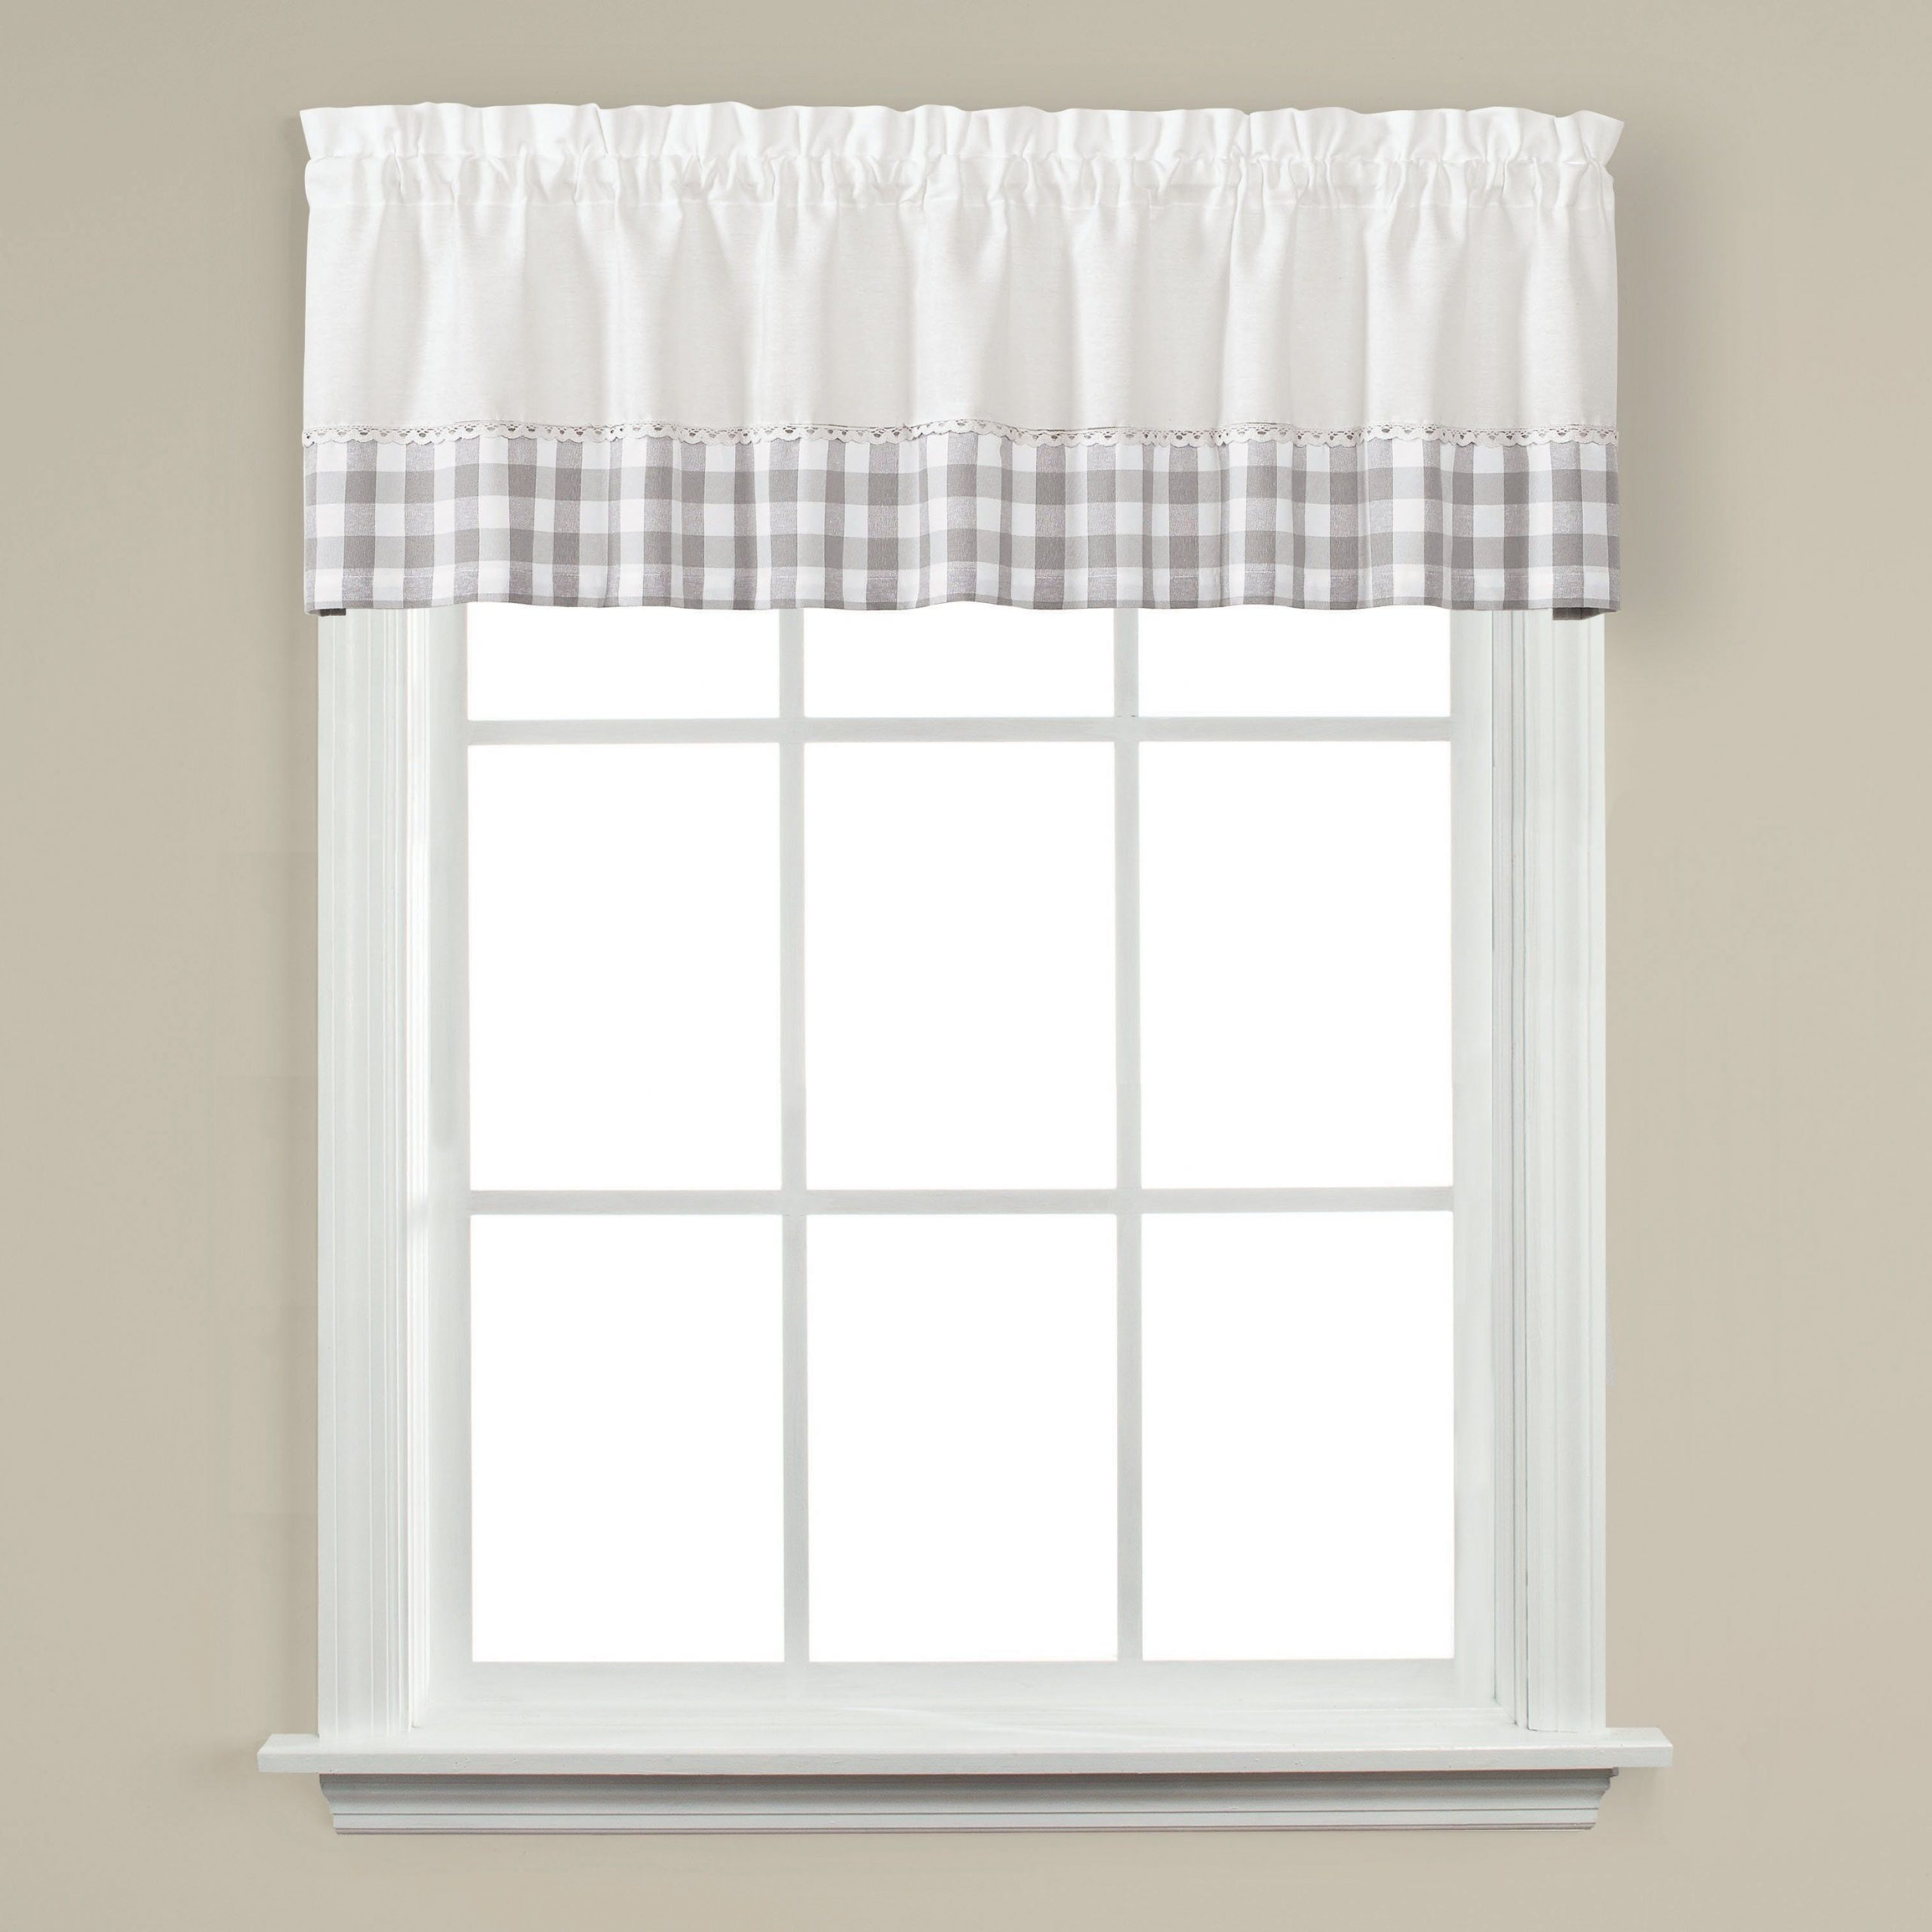 Dove Gray Curtain Tier Pairs For Well Known Skl Home Cumberland 13 Inch Valance In Dove Gray, Grey (View 3 of 20)